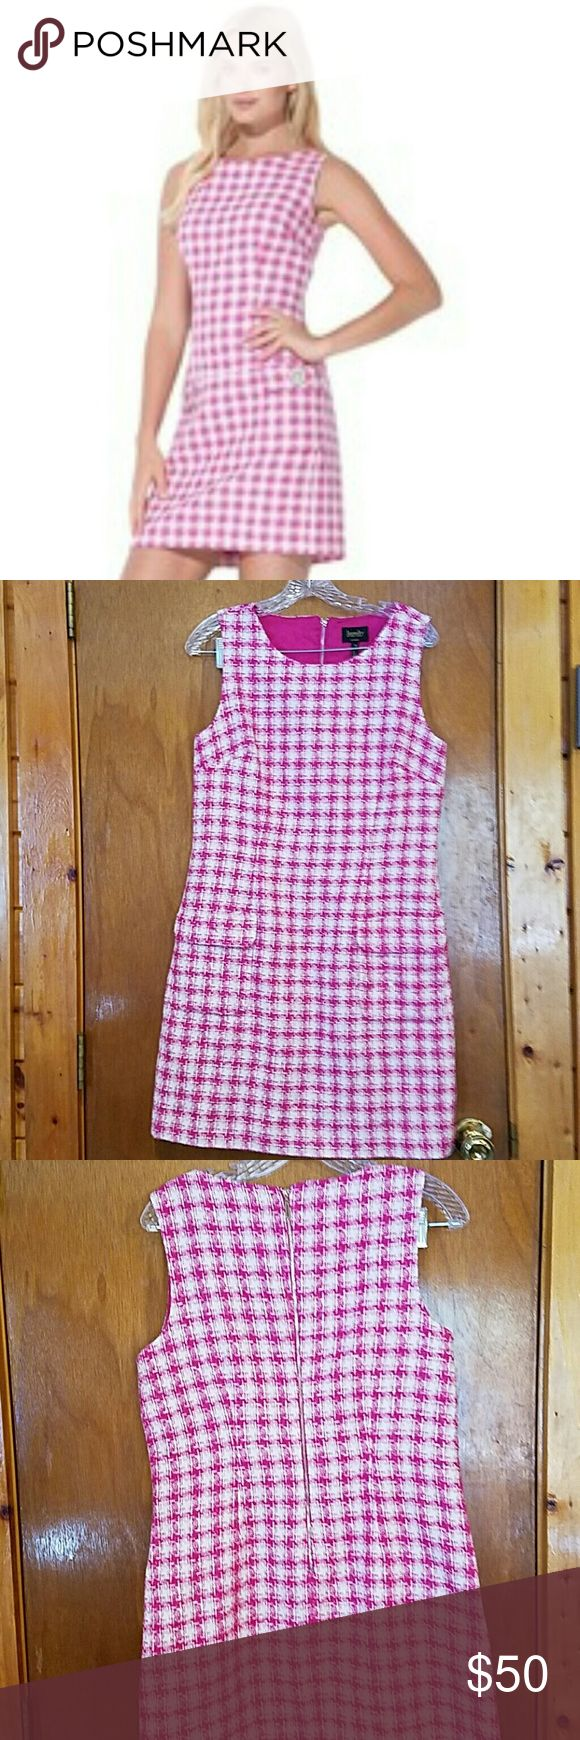 Laundry Shelli Segal Pink Houndstooth Dress Beautiful metallic pink and white dress. The metallic thread makes the dress shimmer in the light. This is the perfect dress for a bridal or baby shower. Excellent condition, smoke free home. Laundry by Shelli Segal Dresses